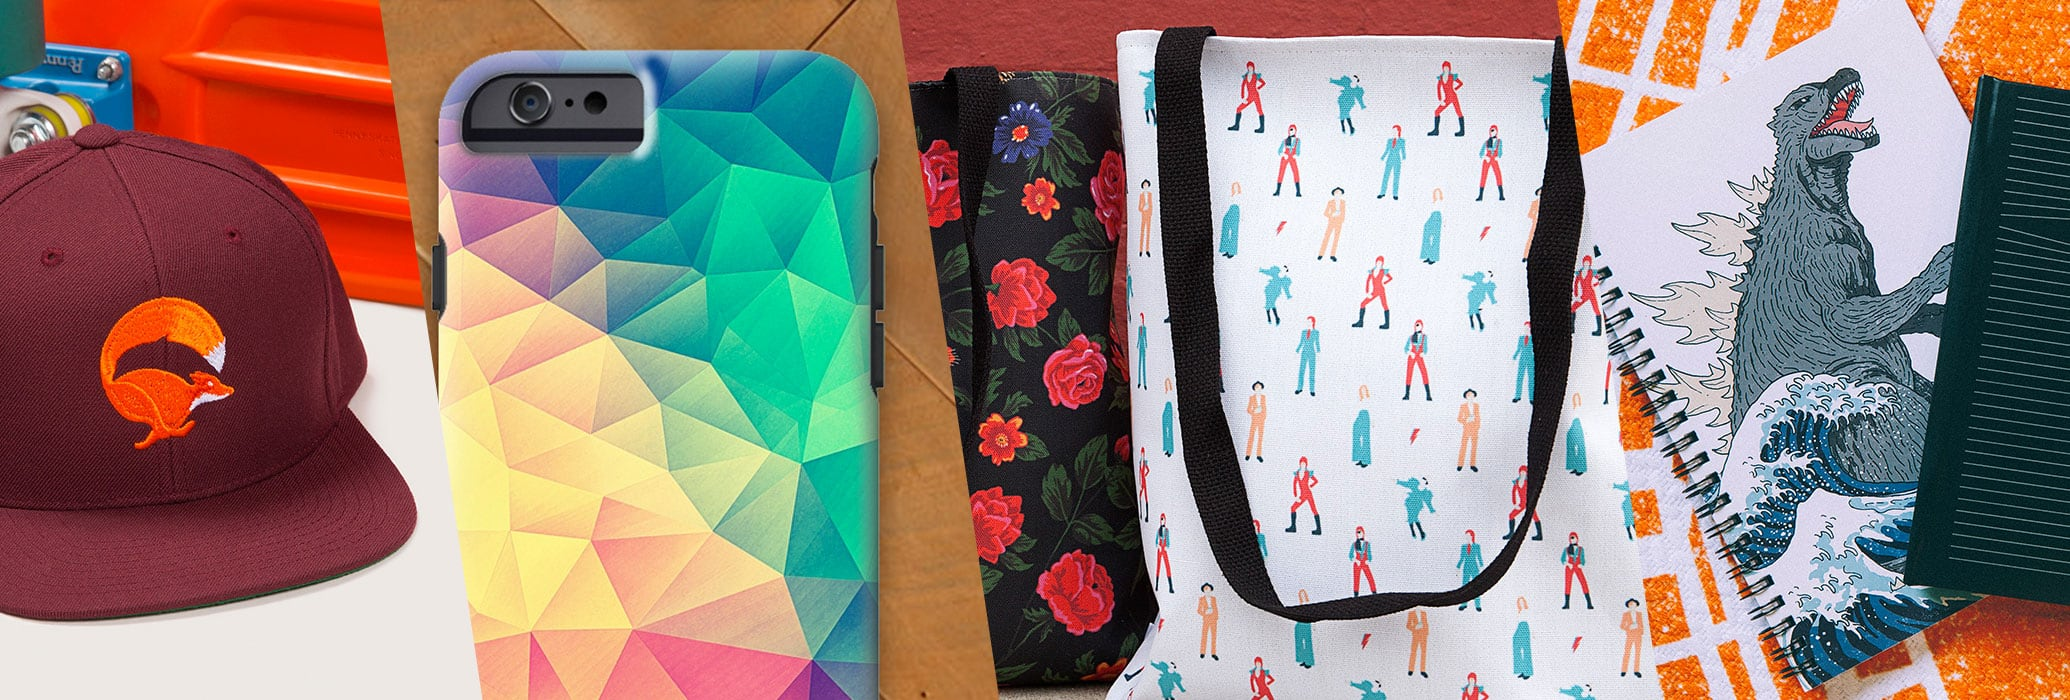 Accessorize with hats, beanies, tote bags, stickers, phone cases, mugs, notebooks, and journals